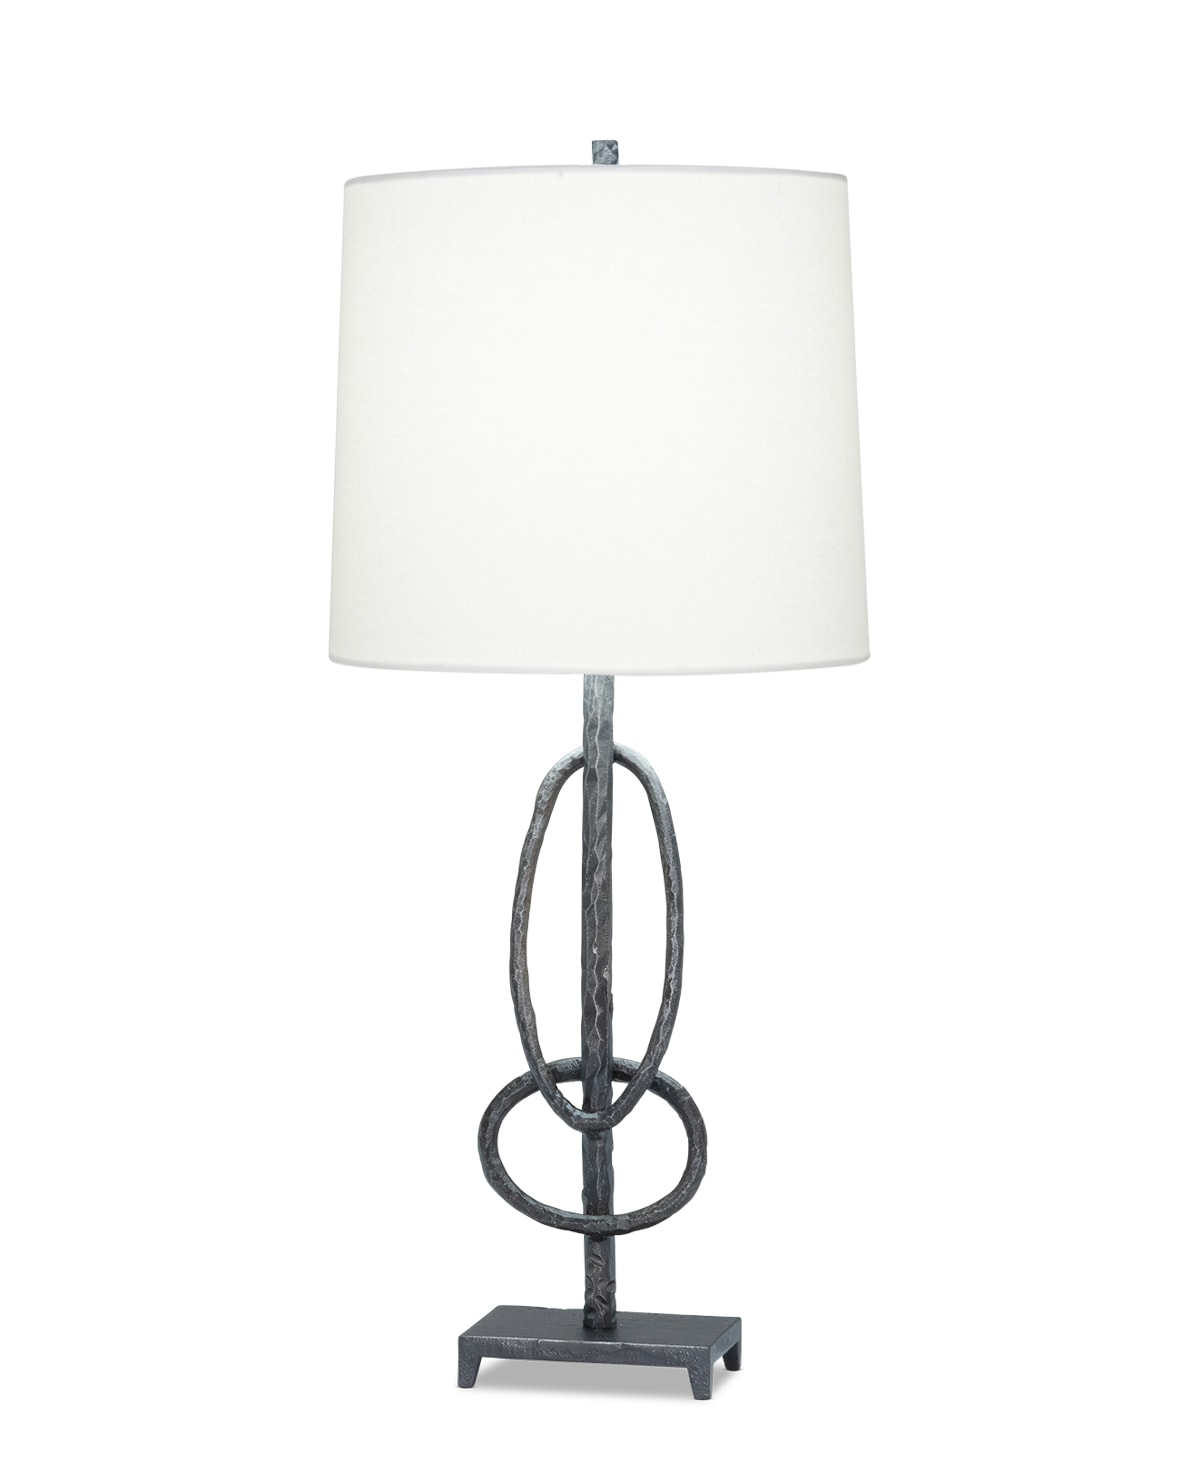 FlowDecor Leo Table Lamp in metal with antique black finish and off-white linen tapered drum shade (# 4493)